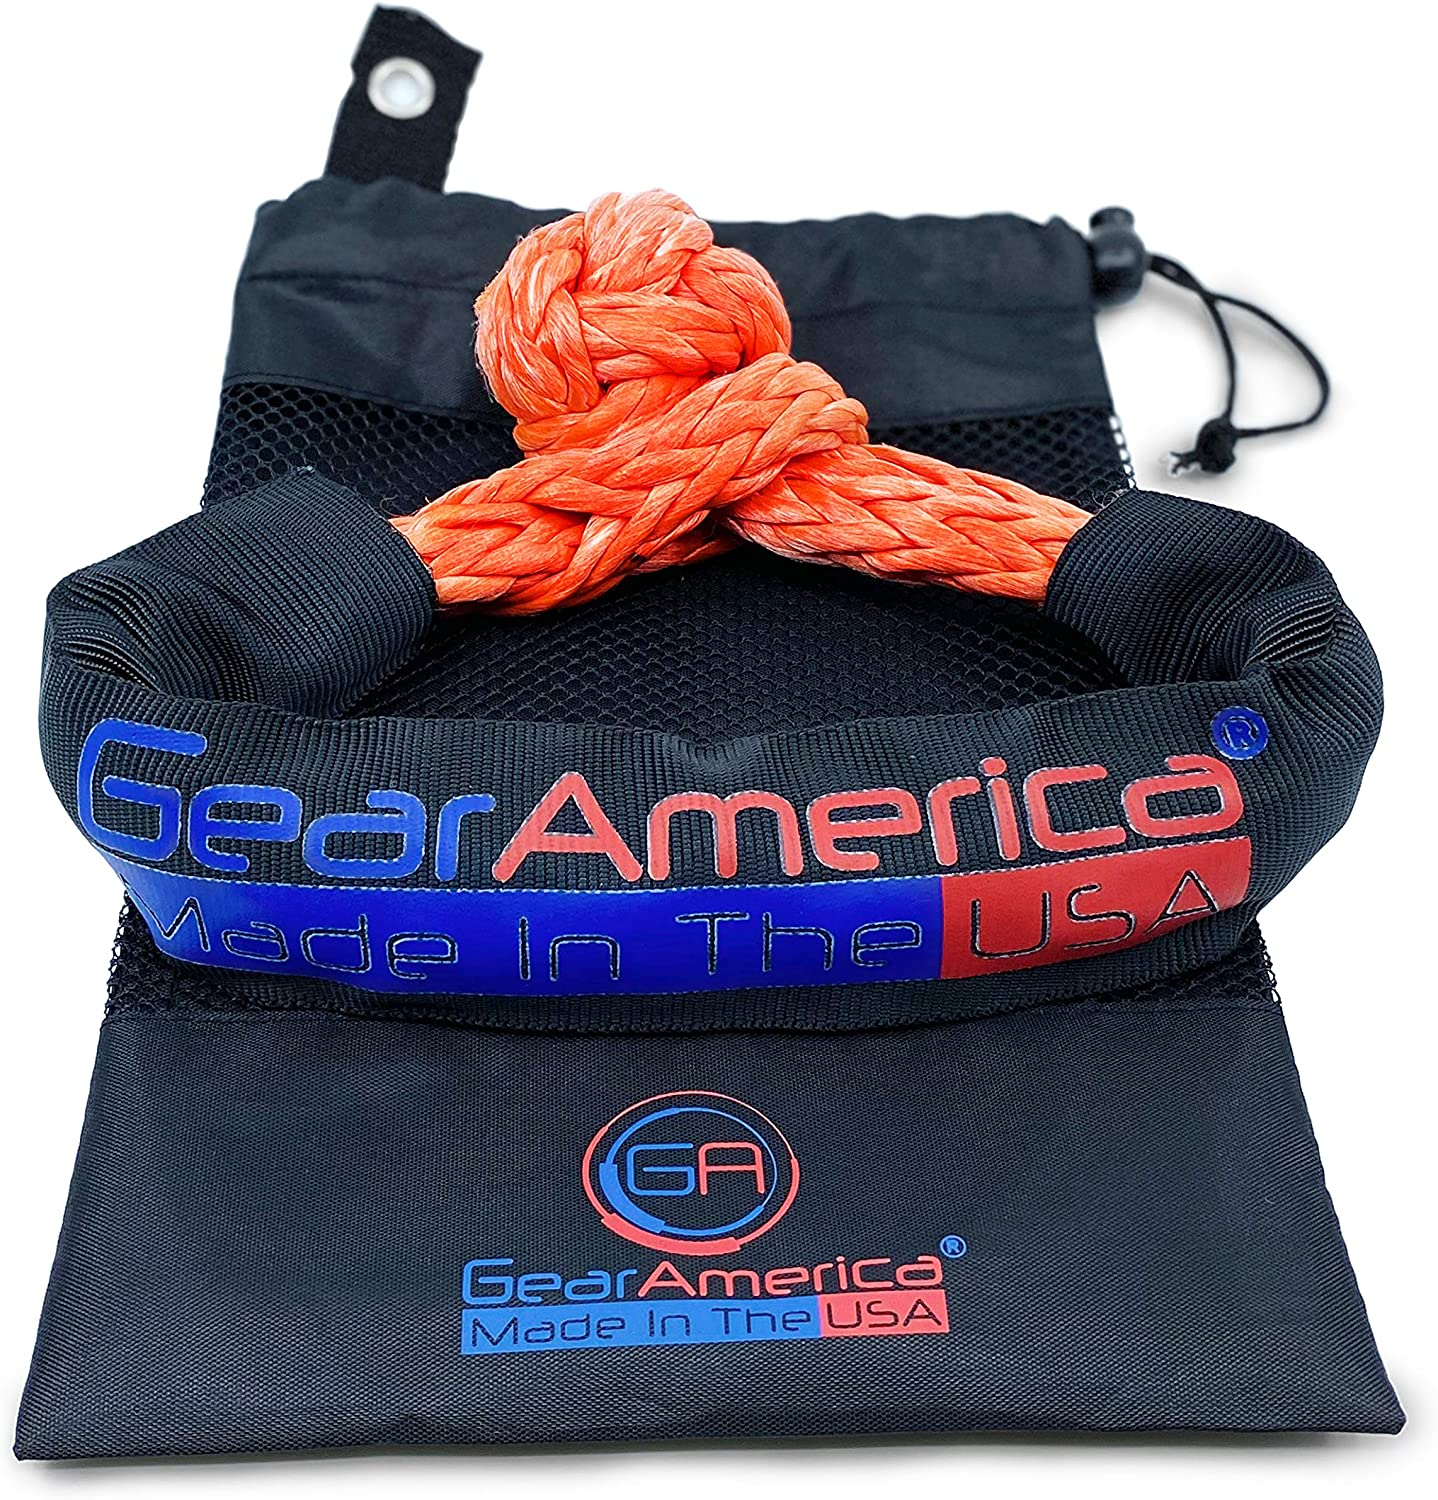 "2PK | 45,000 lbs Breaking Strength for Off-Road Recovery /& Towing Stronger /& Safer Than D Rings Made in USA Protective Sleeve /& Storage Bag Included GearAmerica /½/"" Synthetic Soft Shackles"